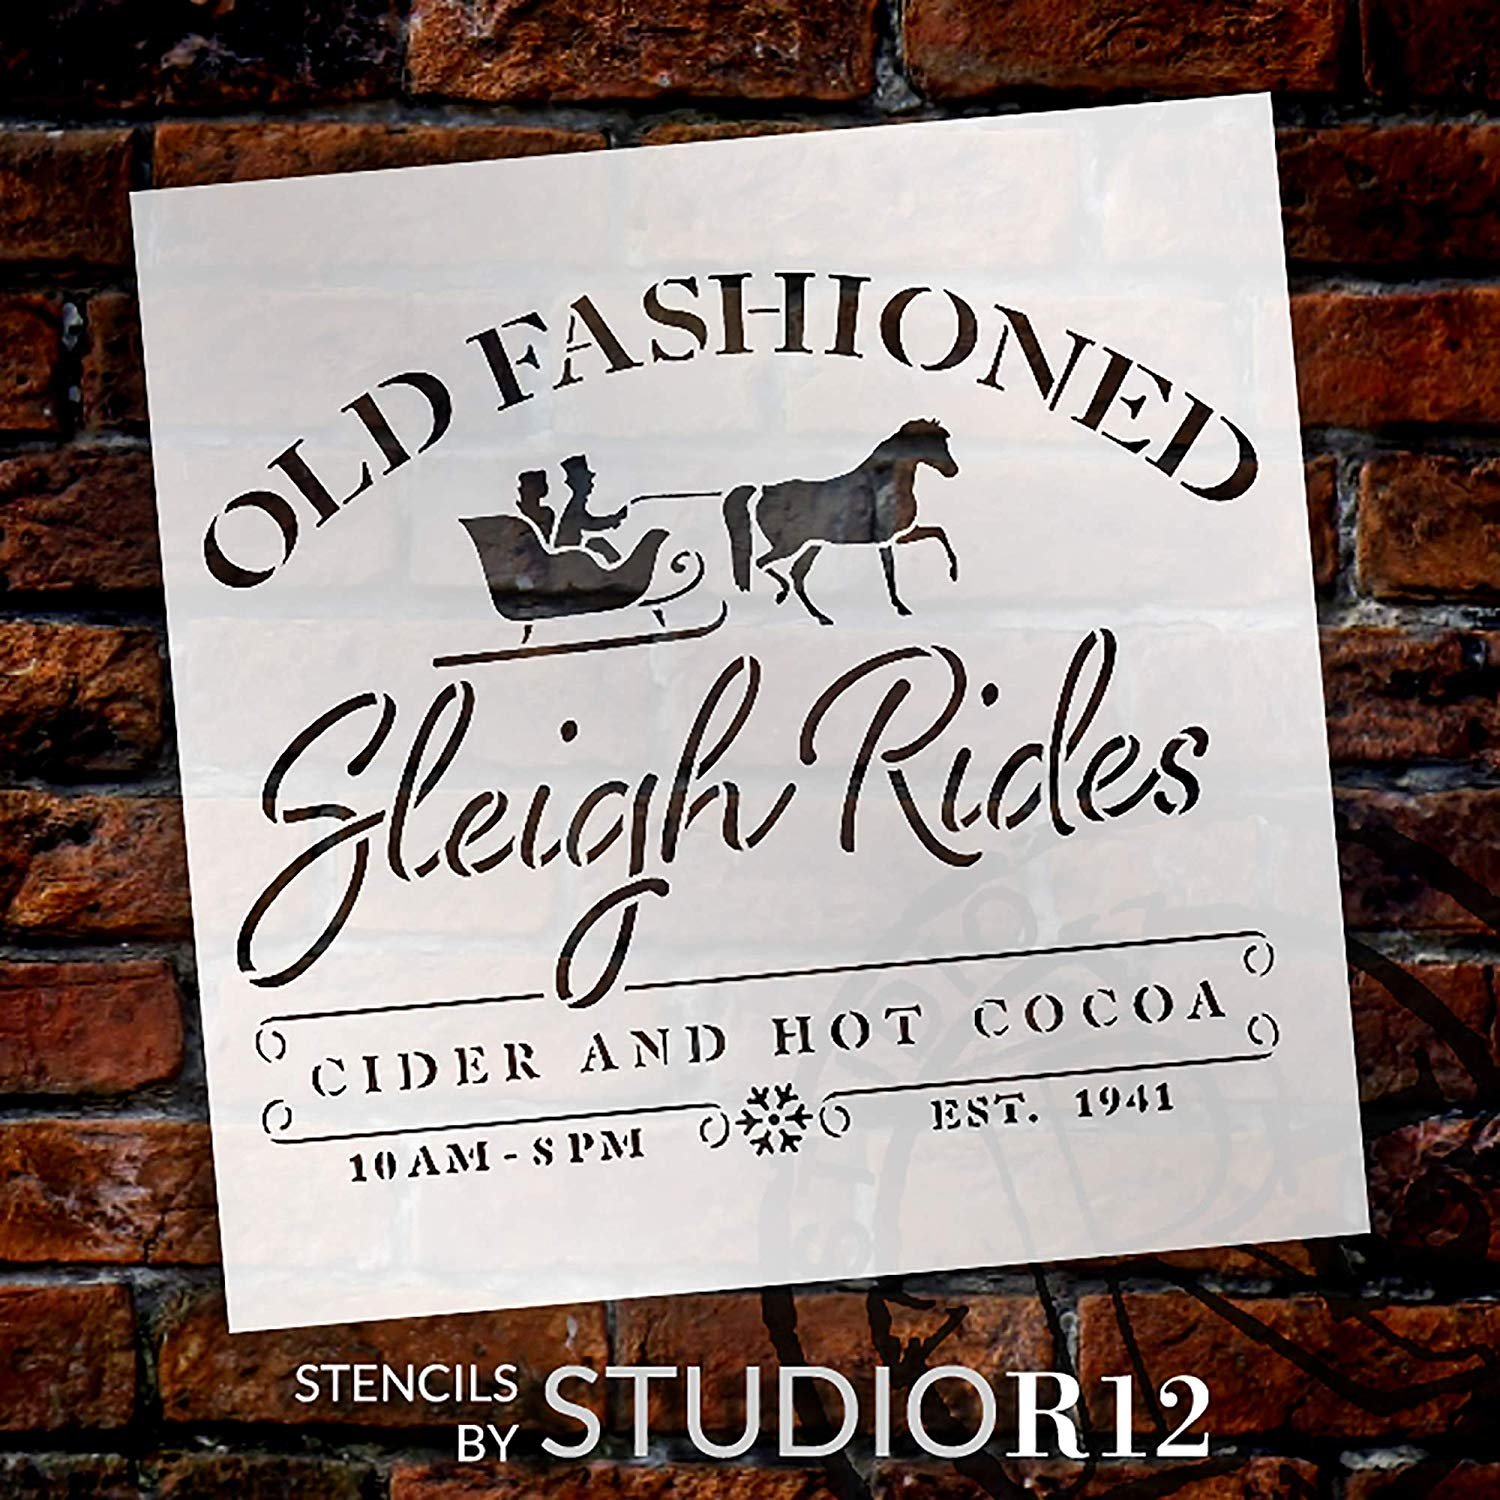 Old Fashioned Sleigh Ride Stencil with Horse by StudioR12   Cider & Hot Cocoa   DIY Christmas Winter Holiday Home Decor   Craft & Paint Wood Sign   Reusable Mylar Template   Select Size